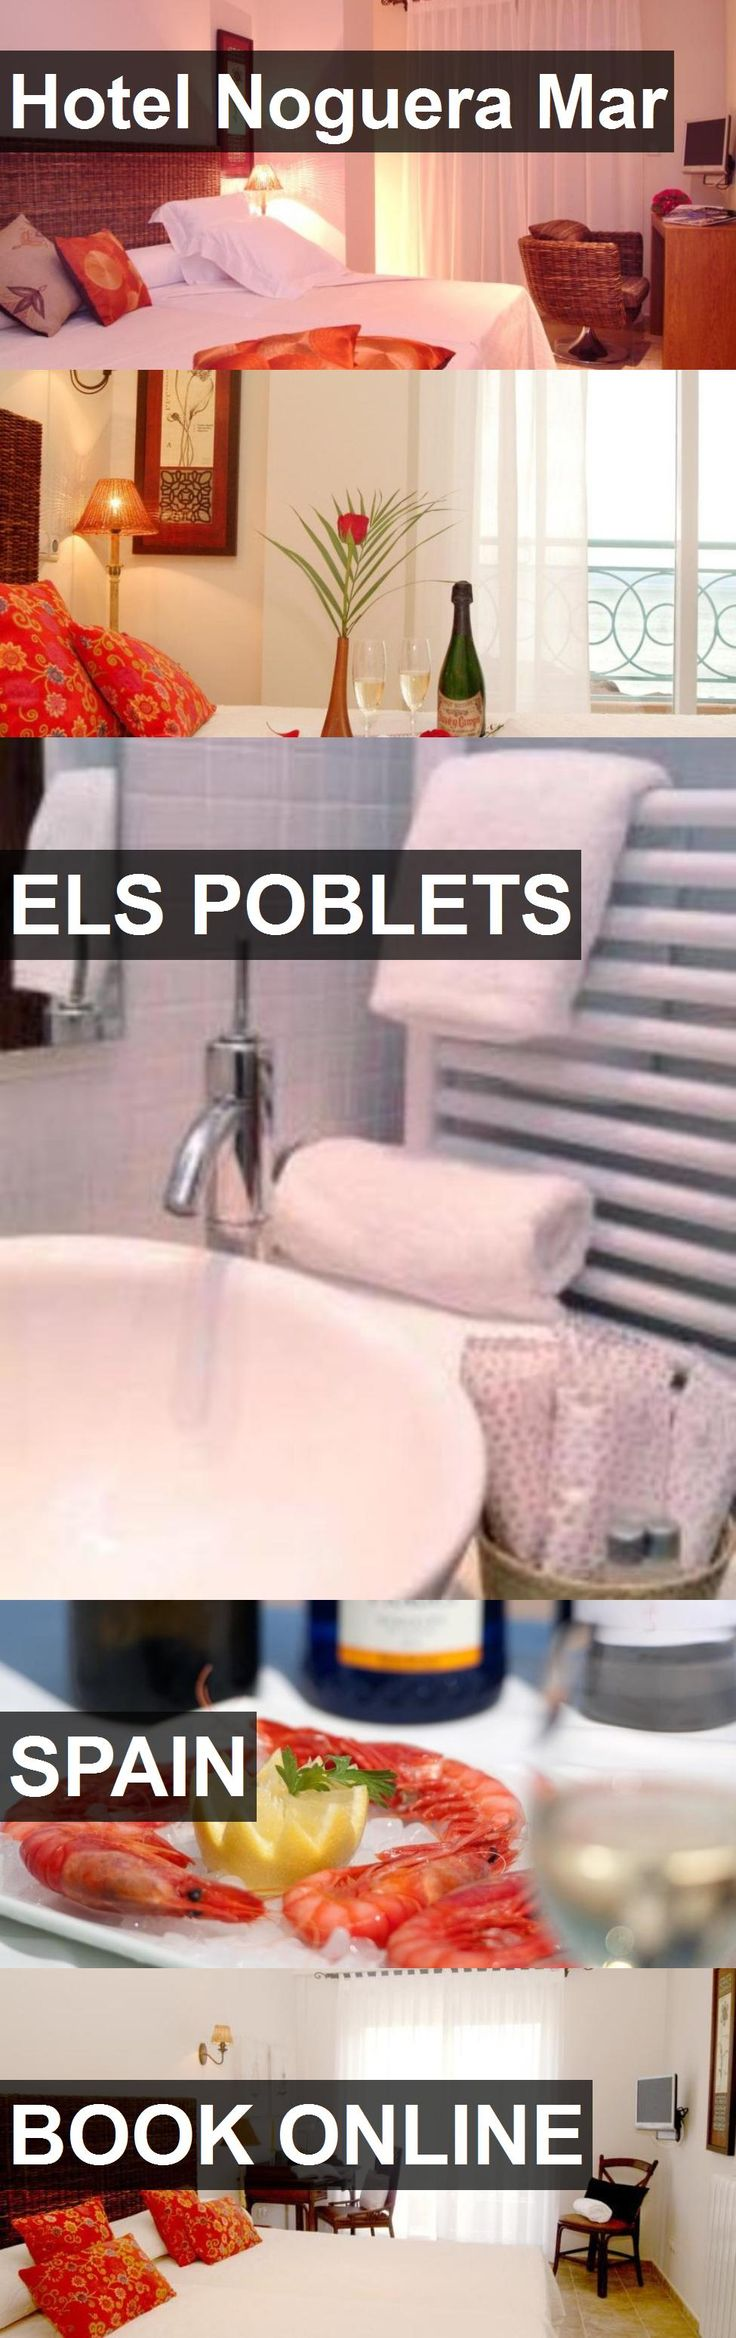 Hotel Hotel Noguera Mar in Els Poblets, Spain. For more information, photos, reviews and best prices please follow the link. #Spain #ElsPoblets #HotelNogueraMar #hotel #travel #vacation